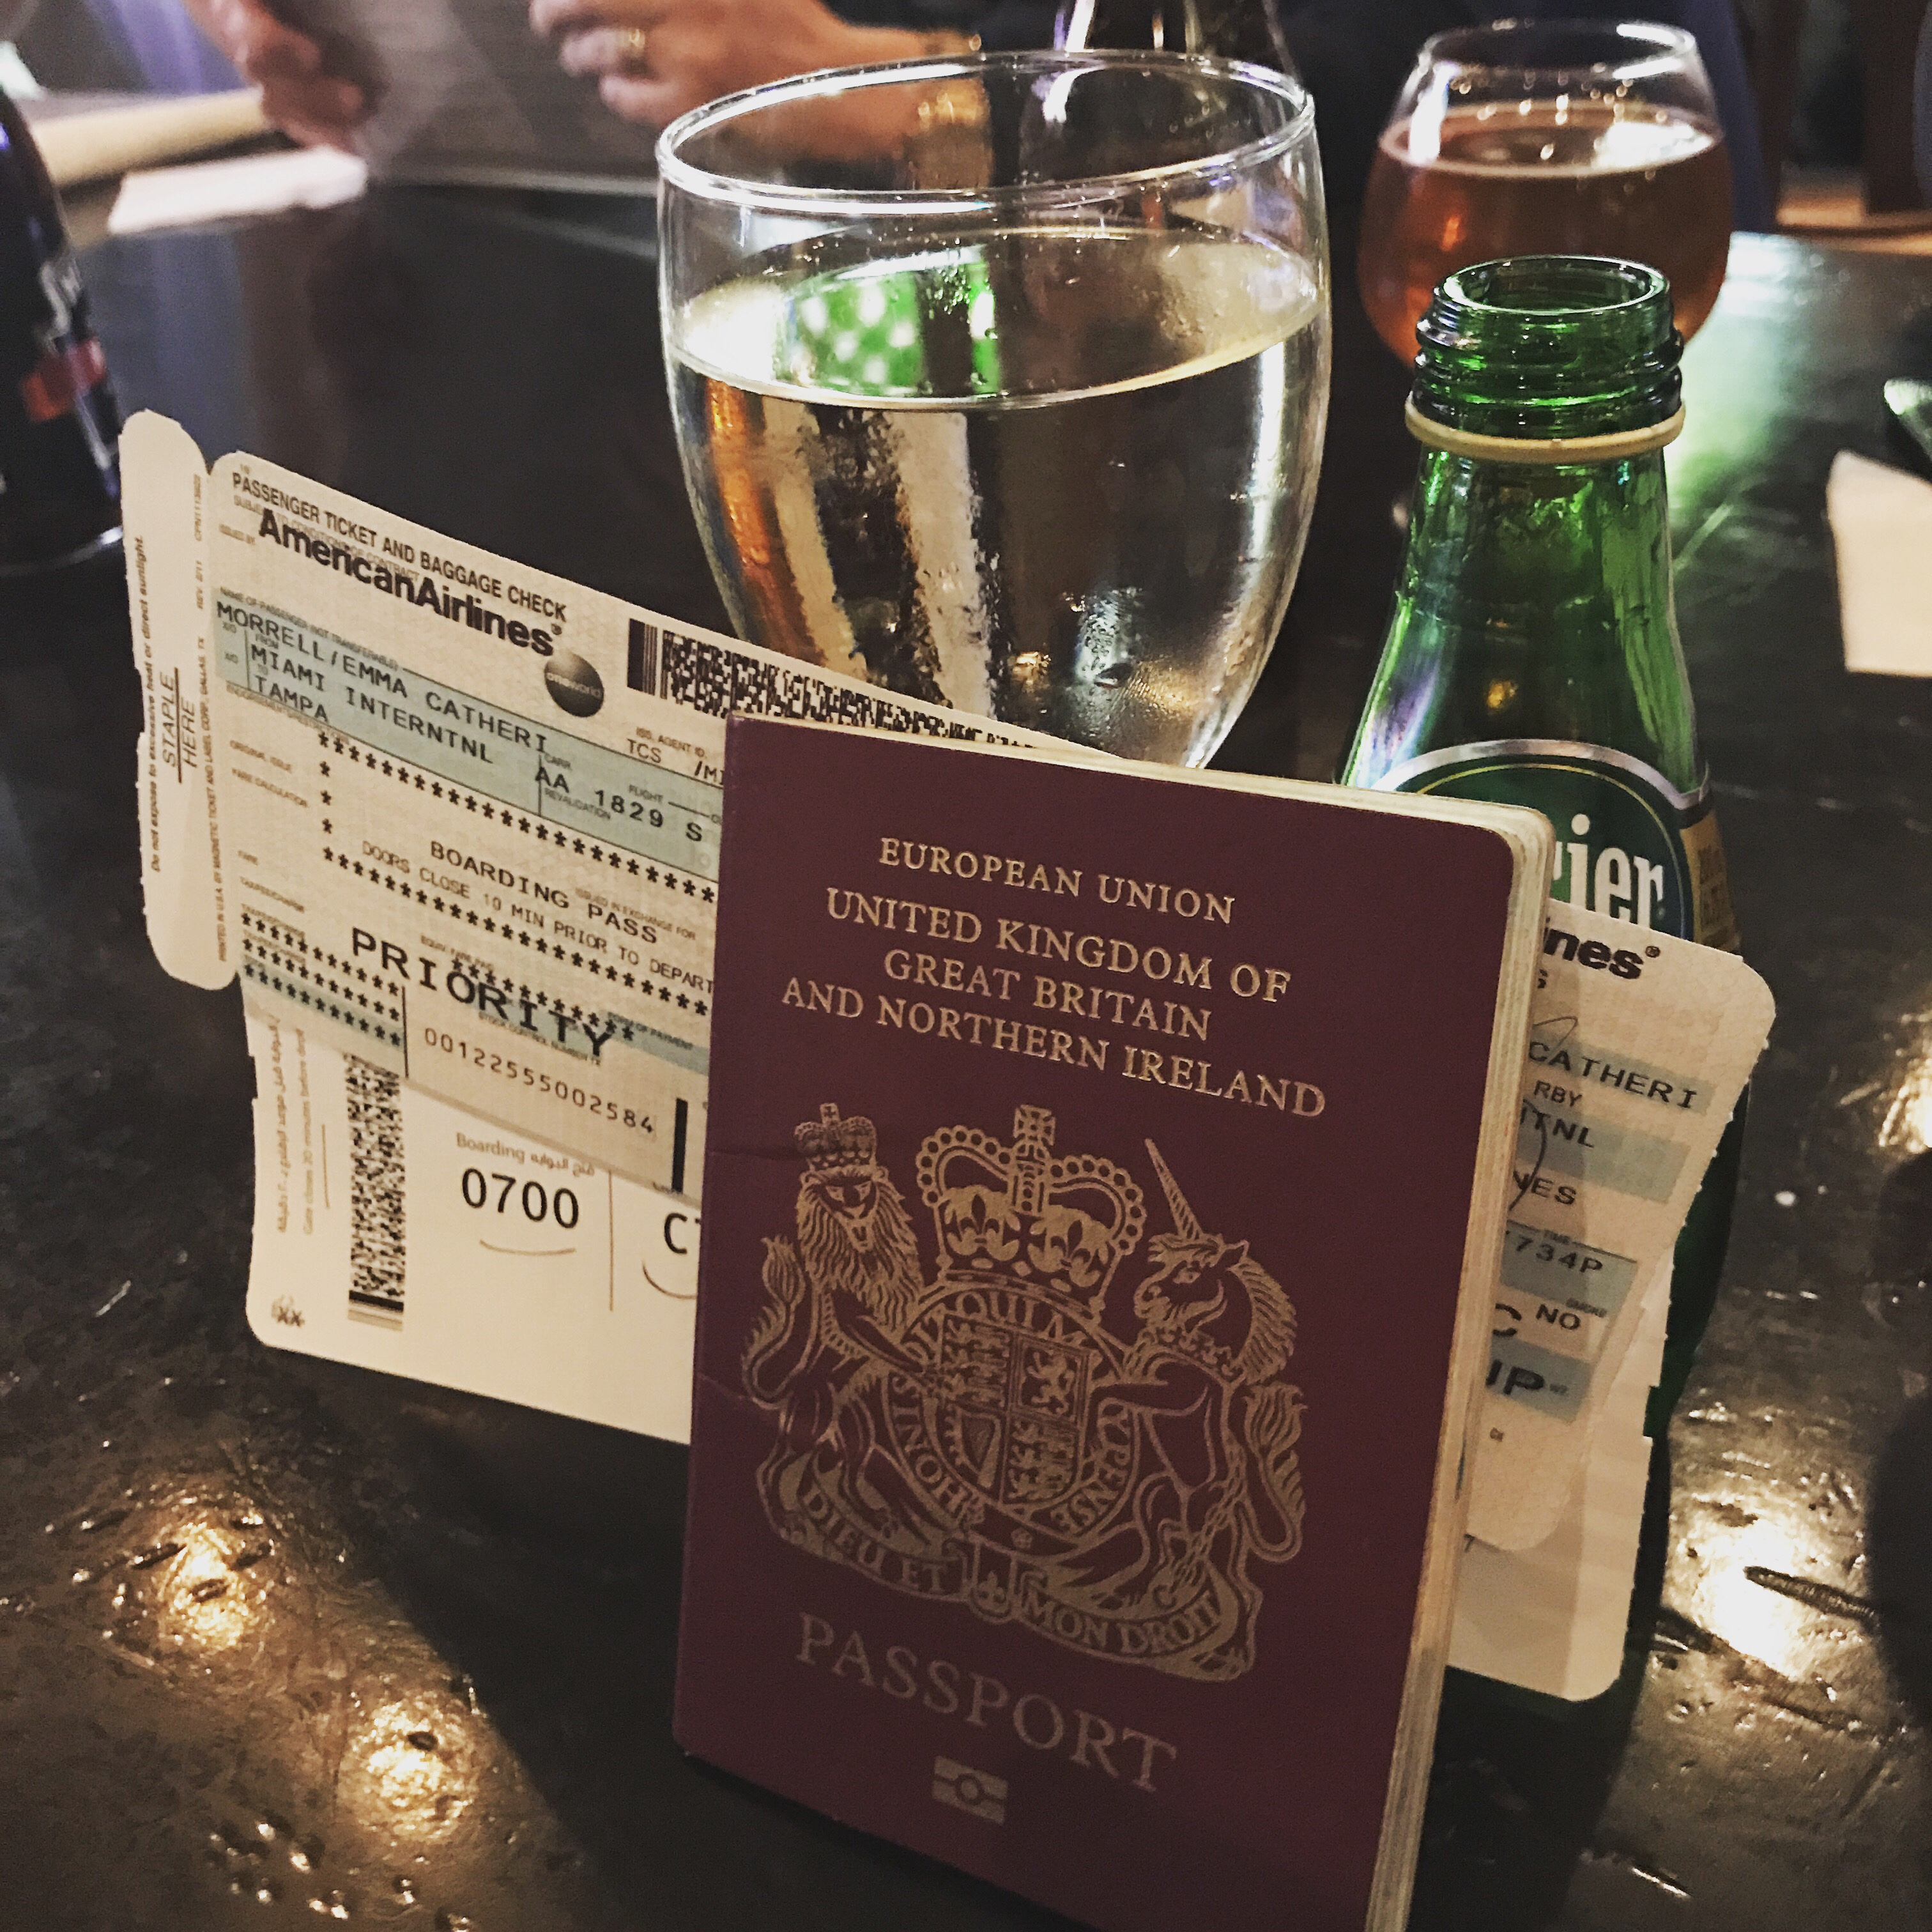 Passport, boarding card, glass of wine and water